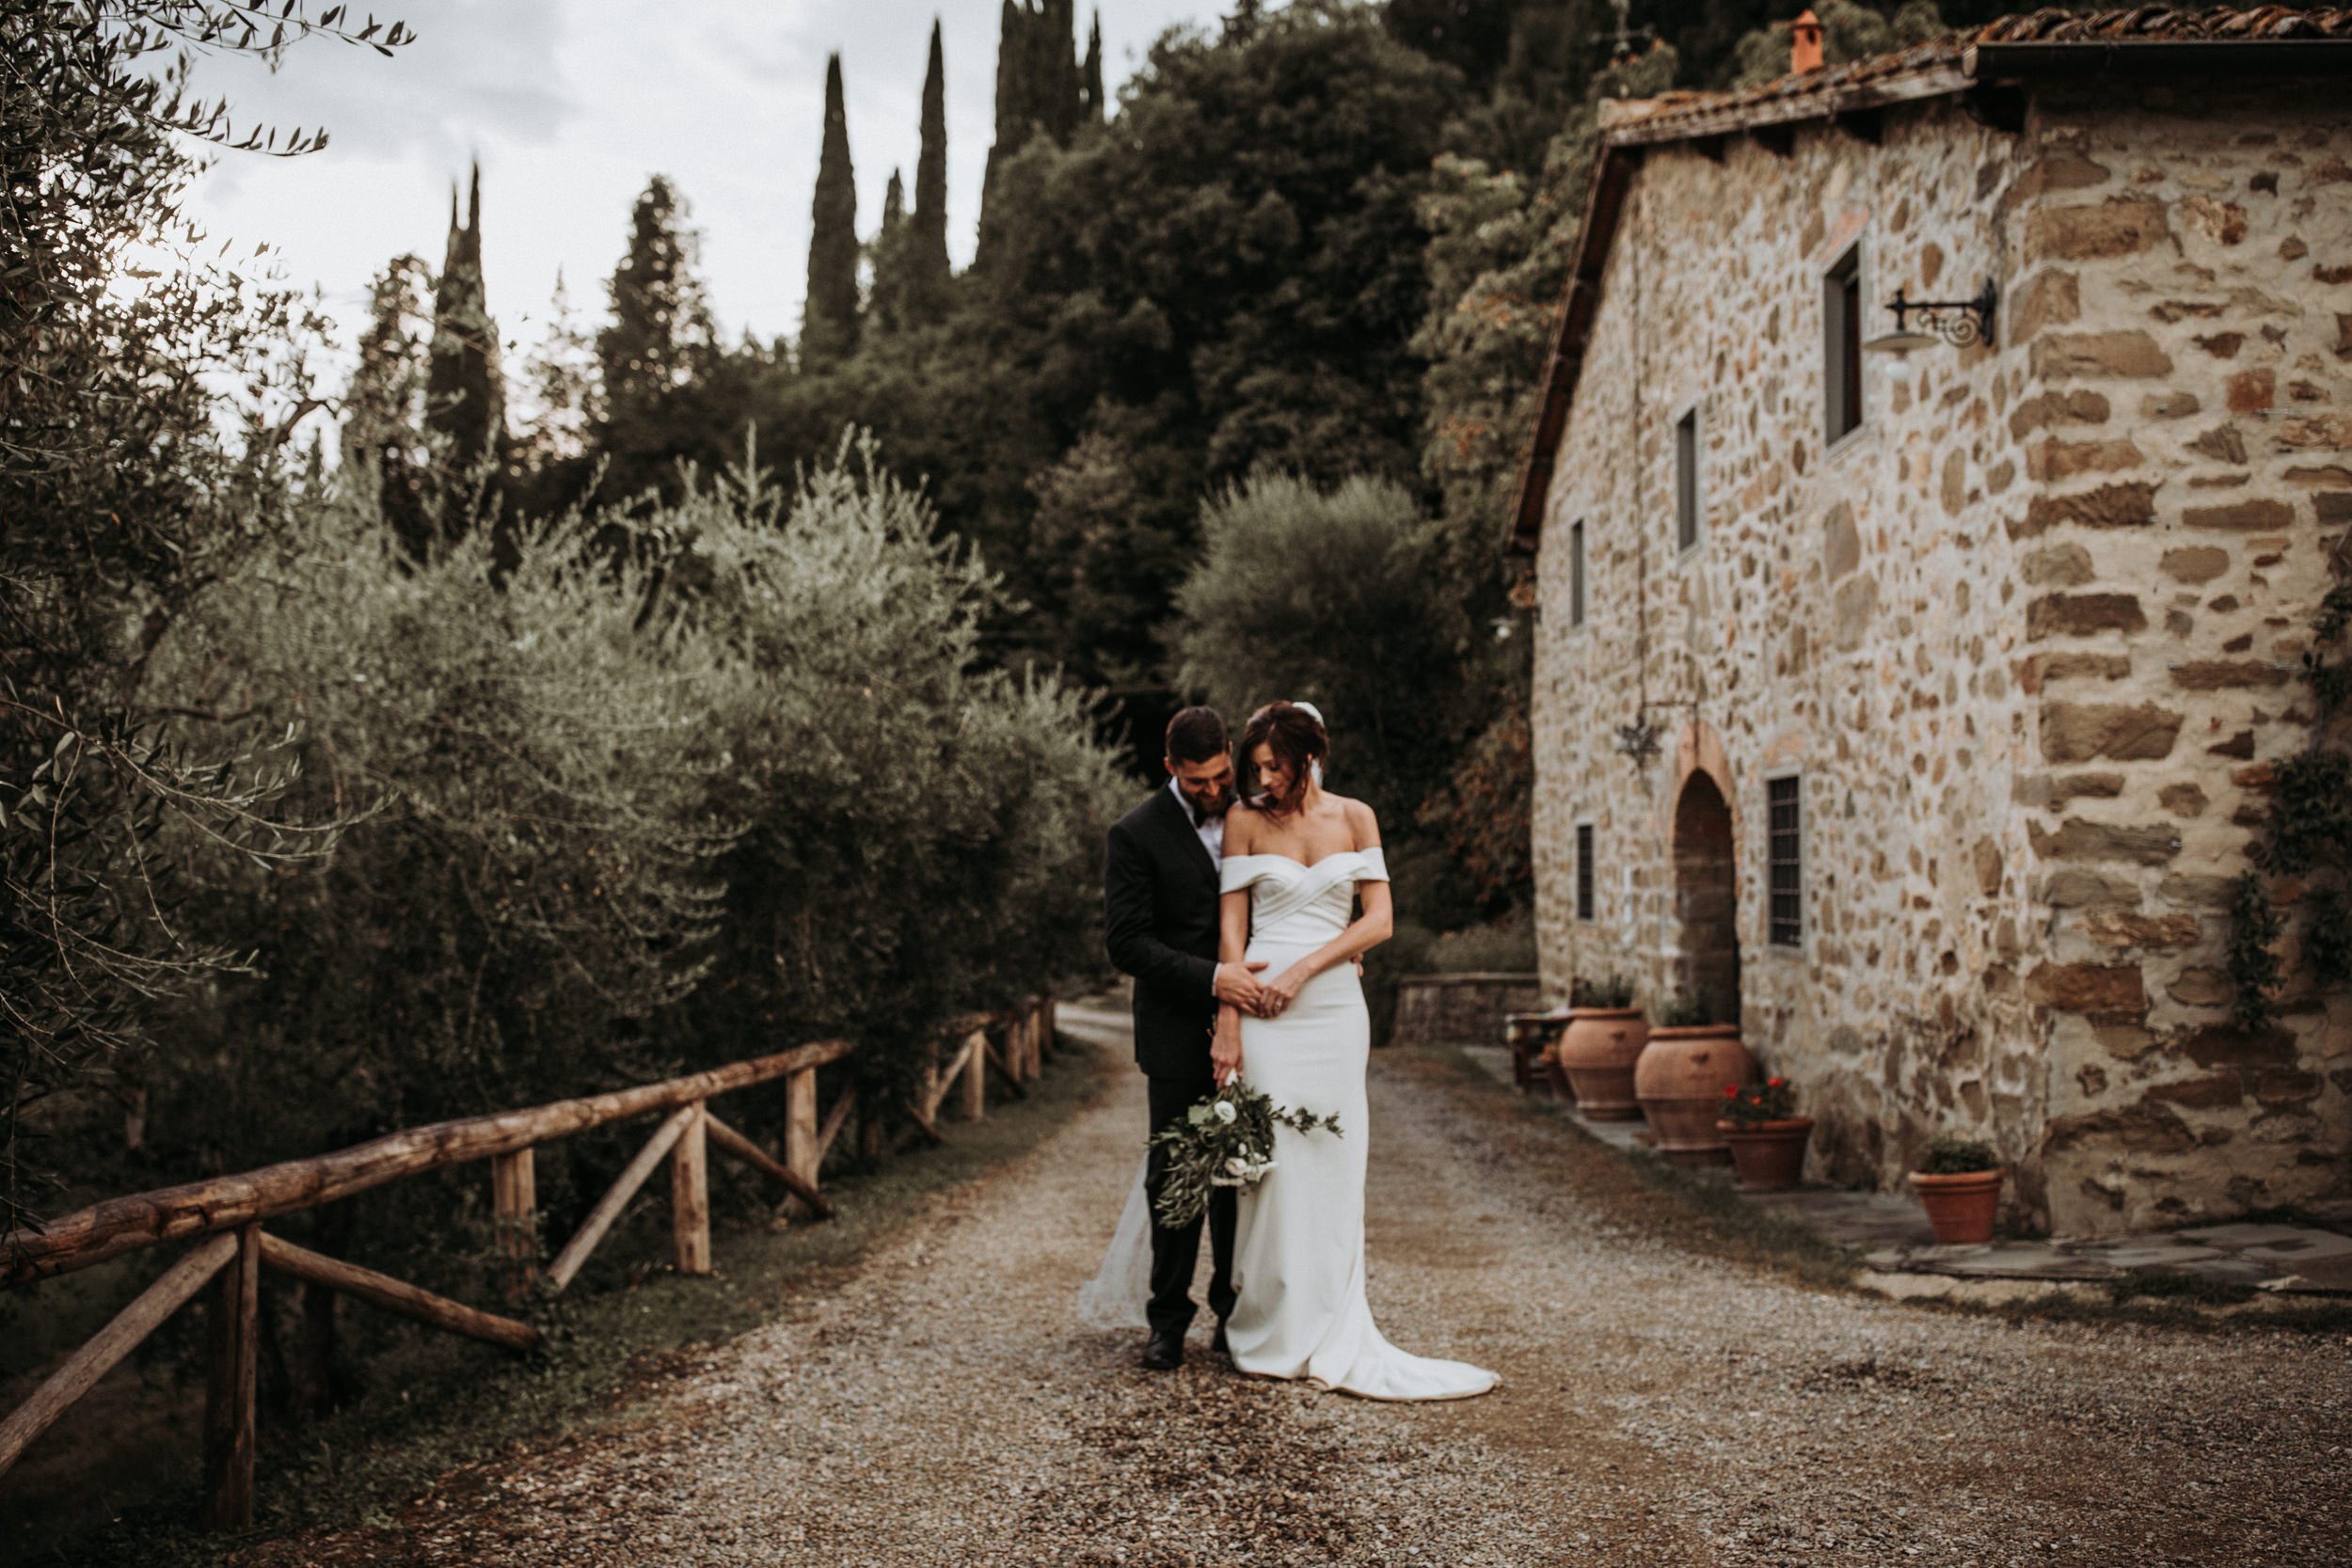 dm_photography_KW_Tuscanyweddingday_315